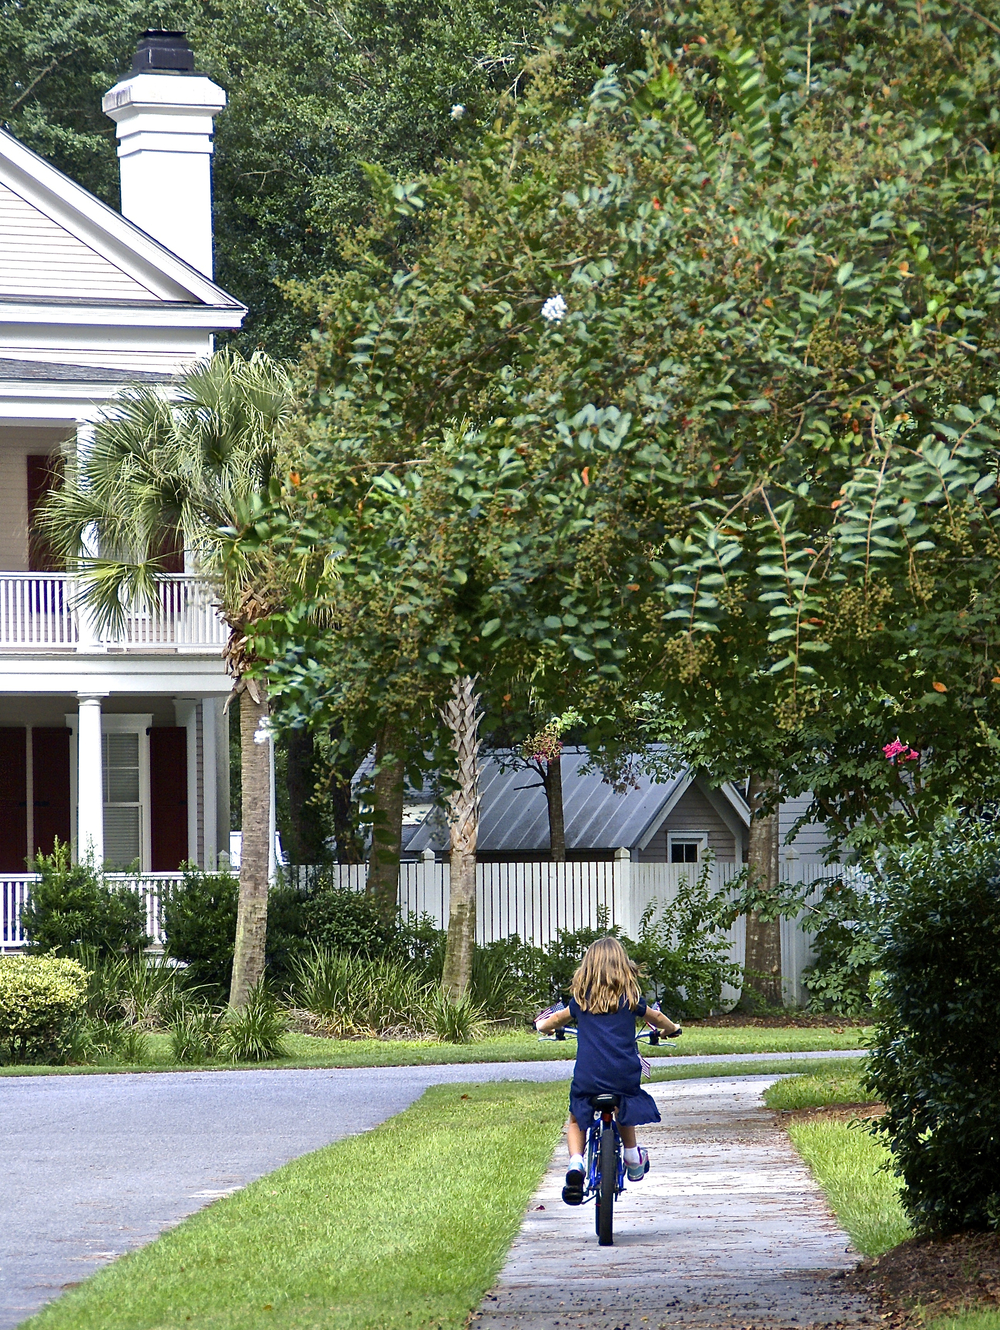 Houses facing streets safe for children to bike along in Habersham, here in Beaufort County SC